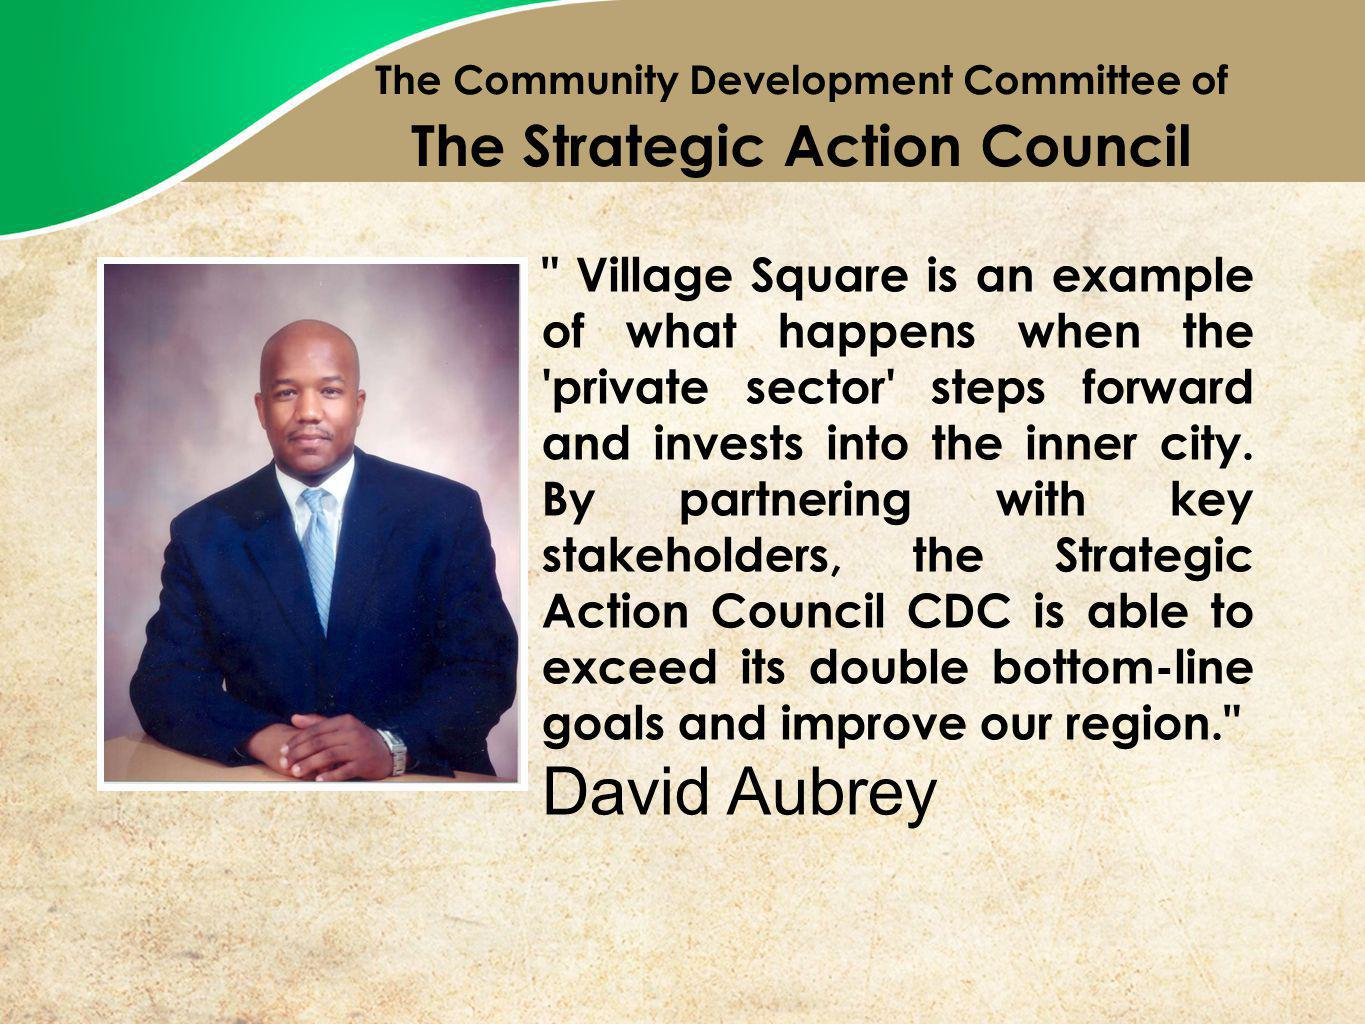 Village Square is an example of what happens when the private sector steps forward and invests into the inner city.